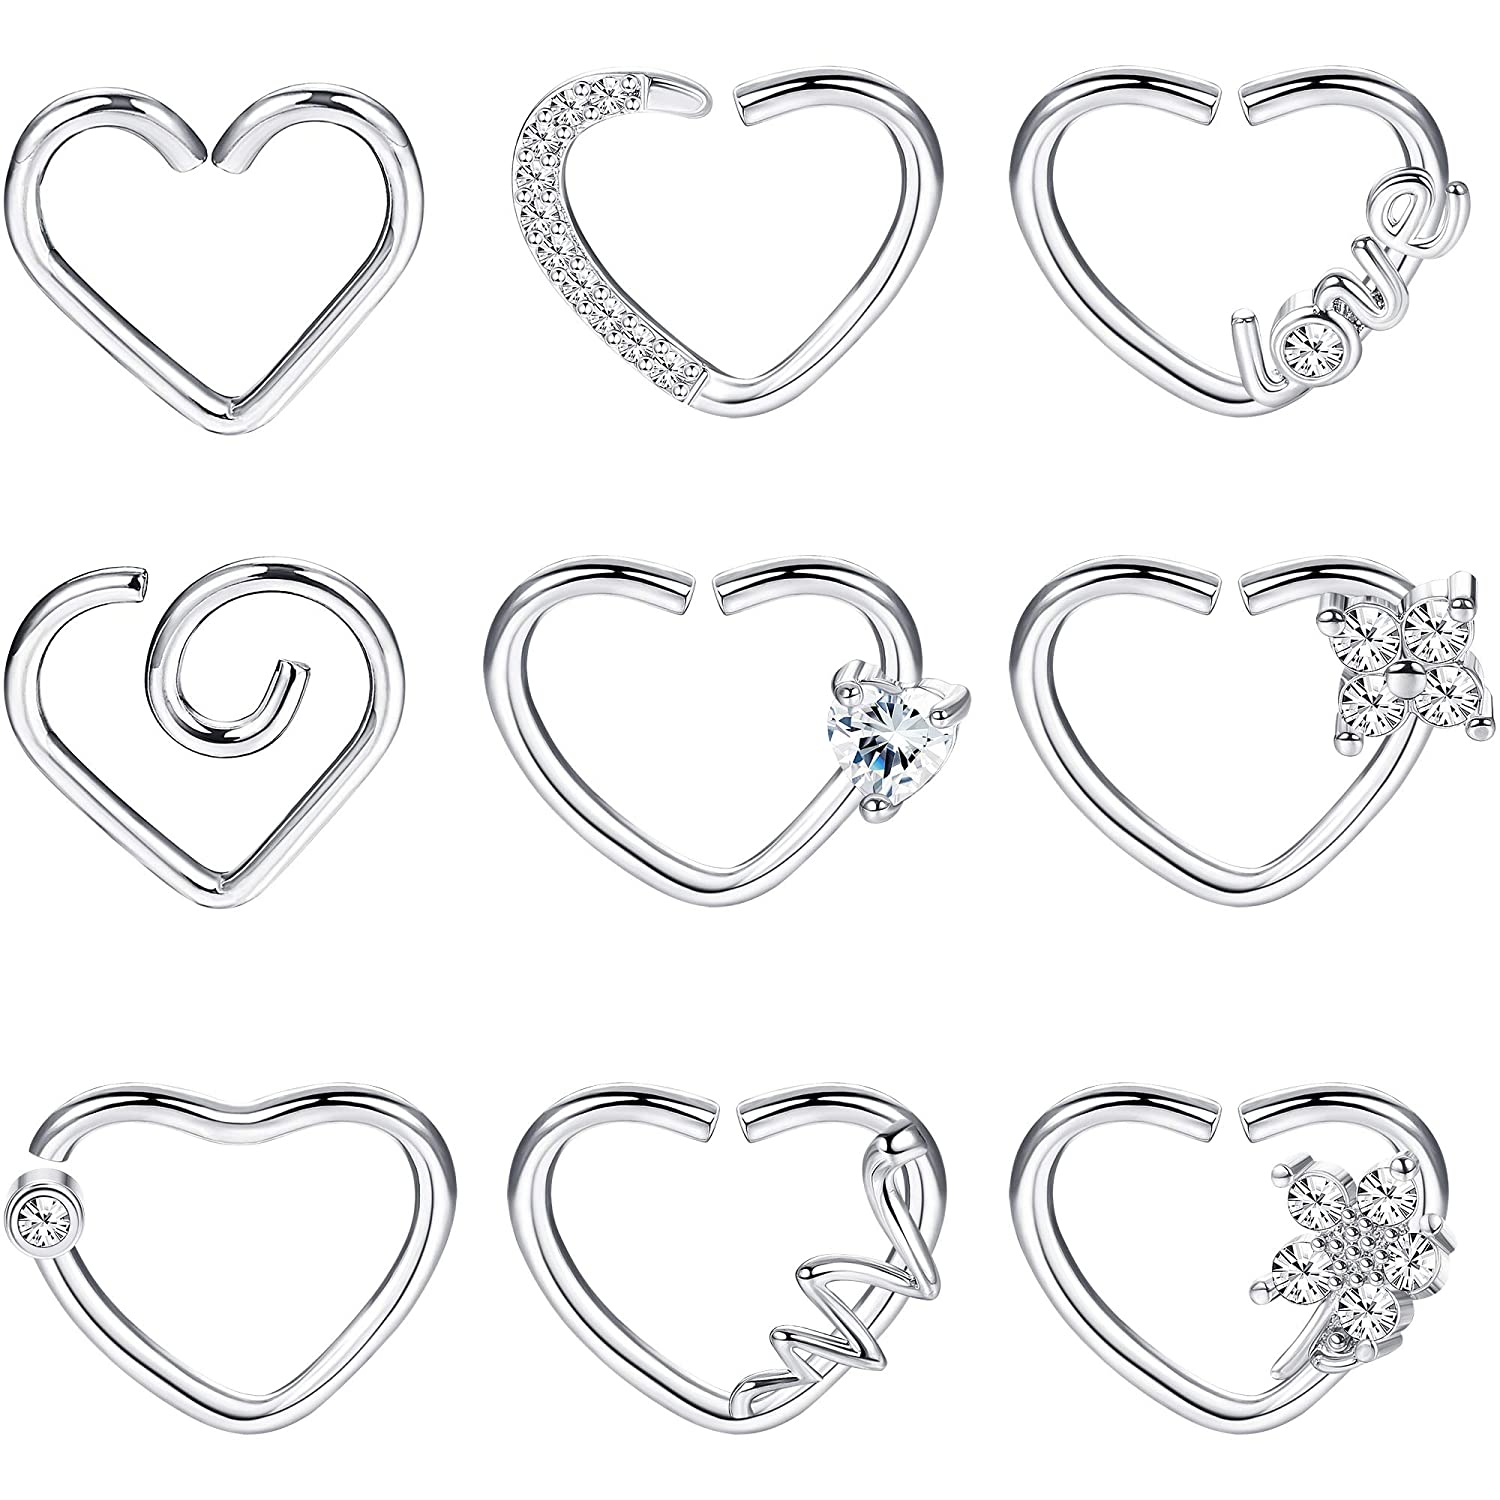 LOYALLOOK 9Pcs Helix Cartilage Earring Tragus Daith Piercing Surgical Steel Heart//Star Nose Ring 16 Gauge